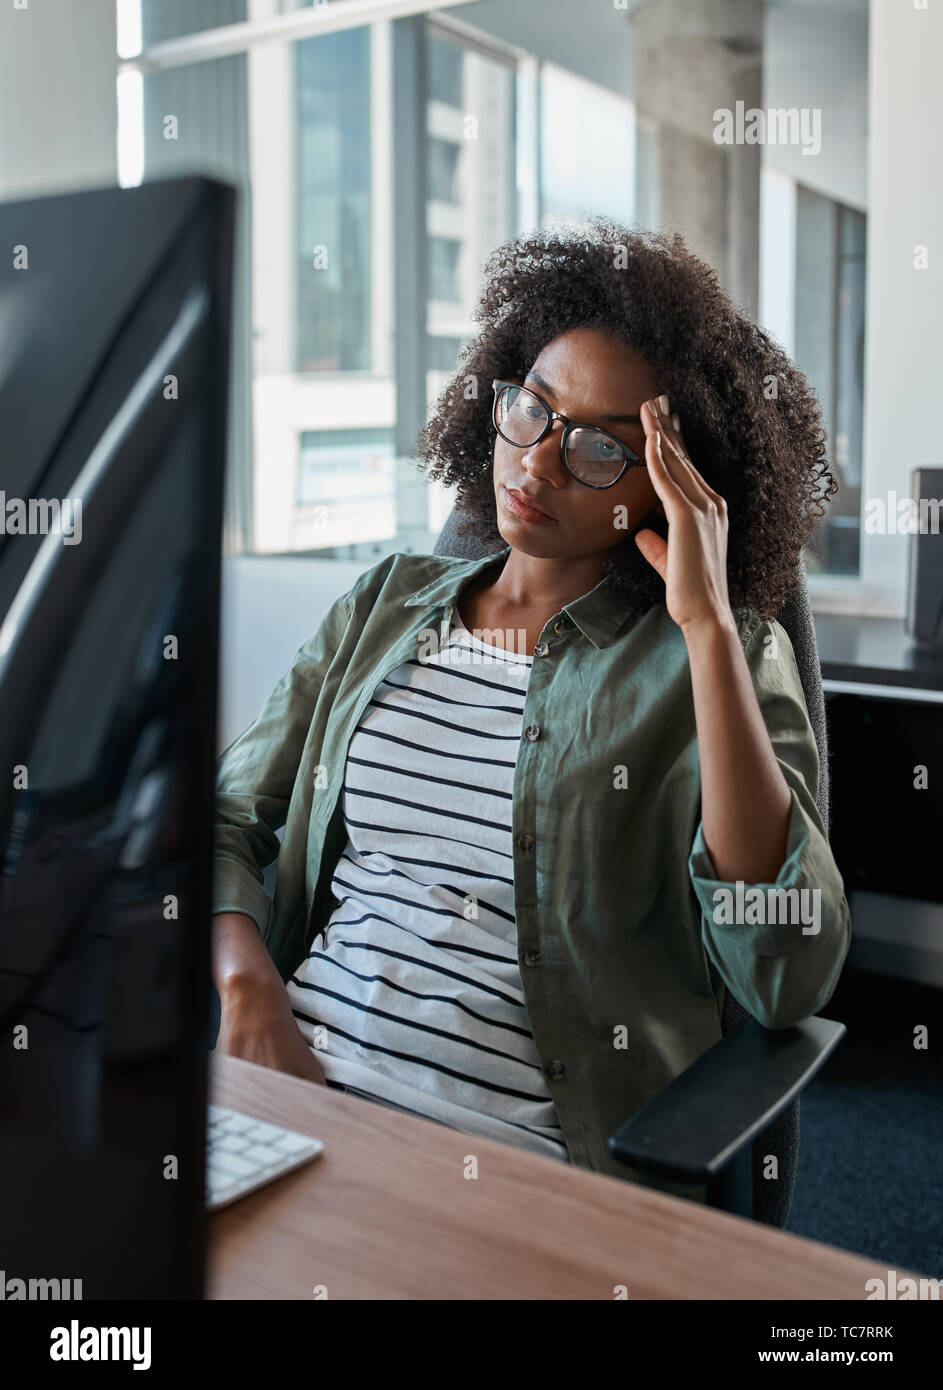 Tired overworked businesswoman looking at computer in an office - Stock Image